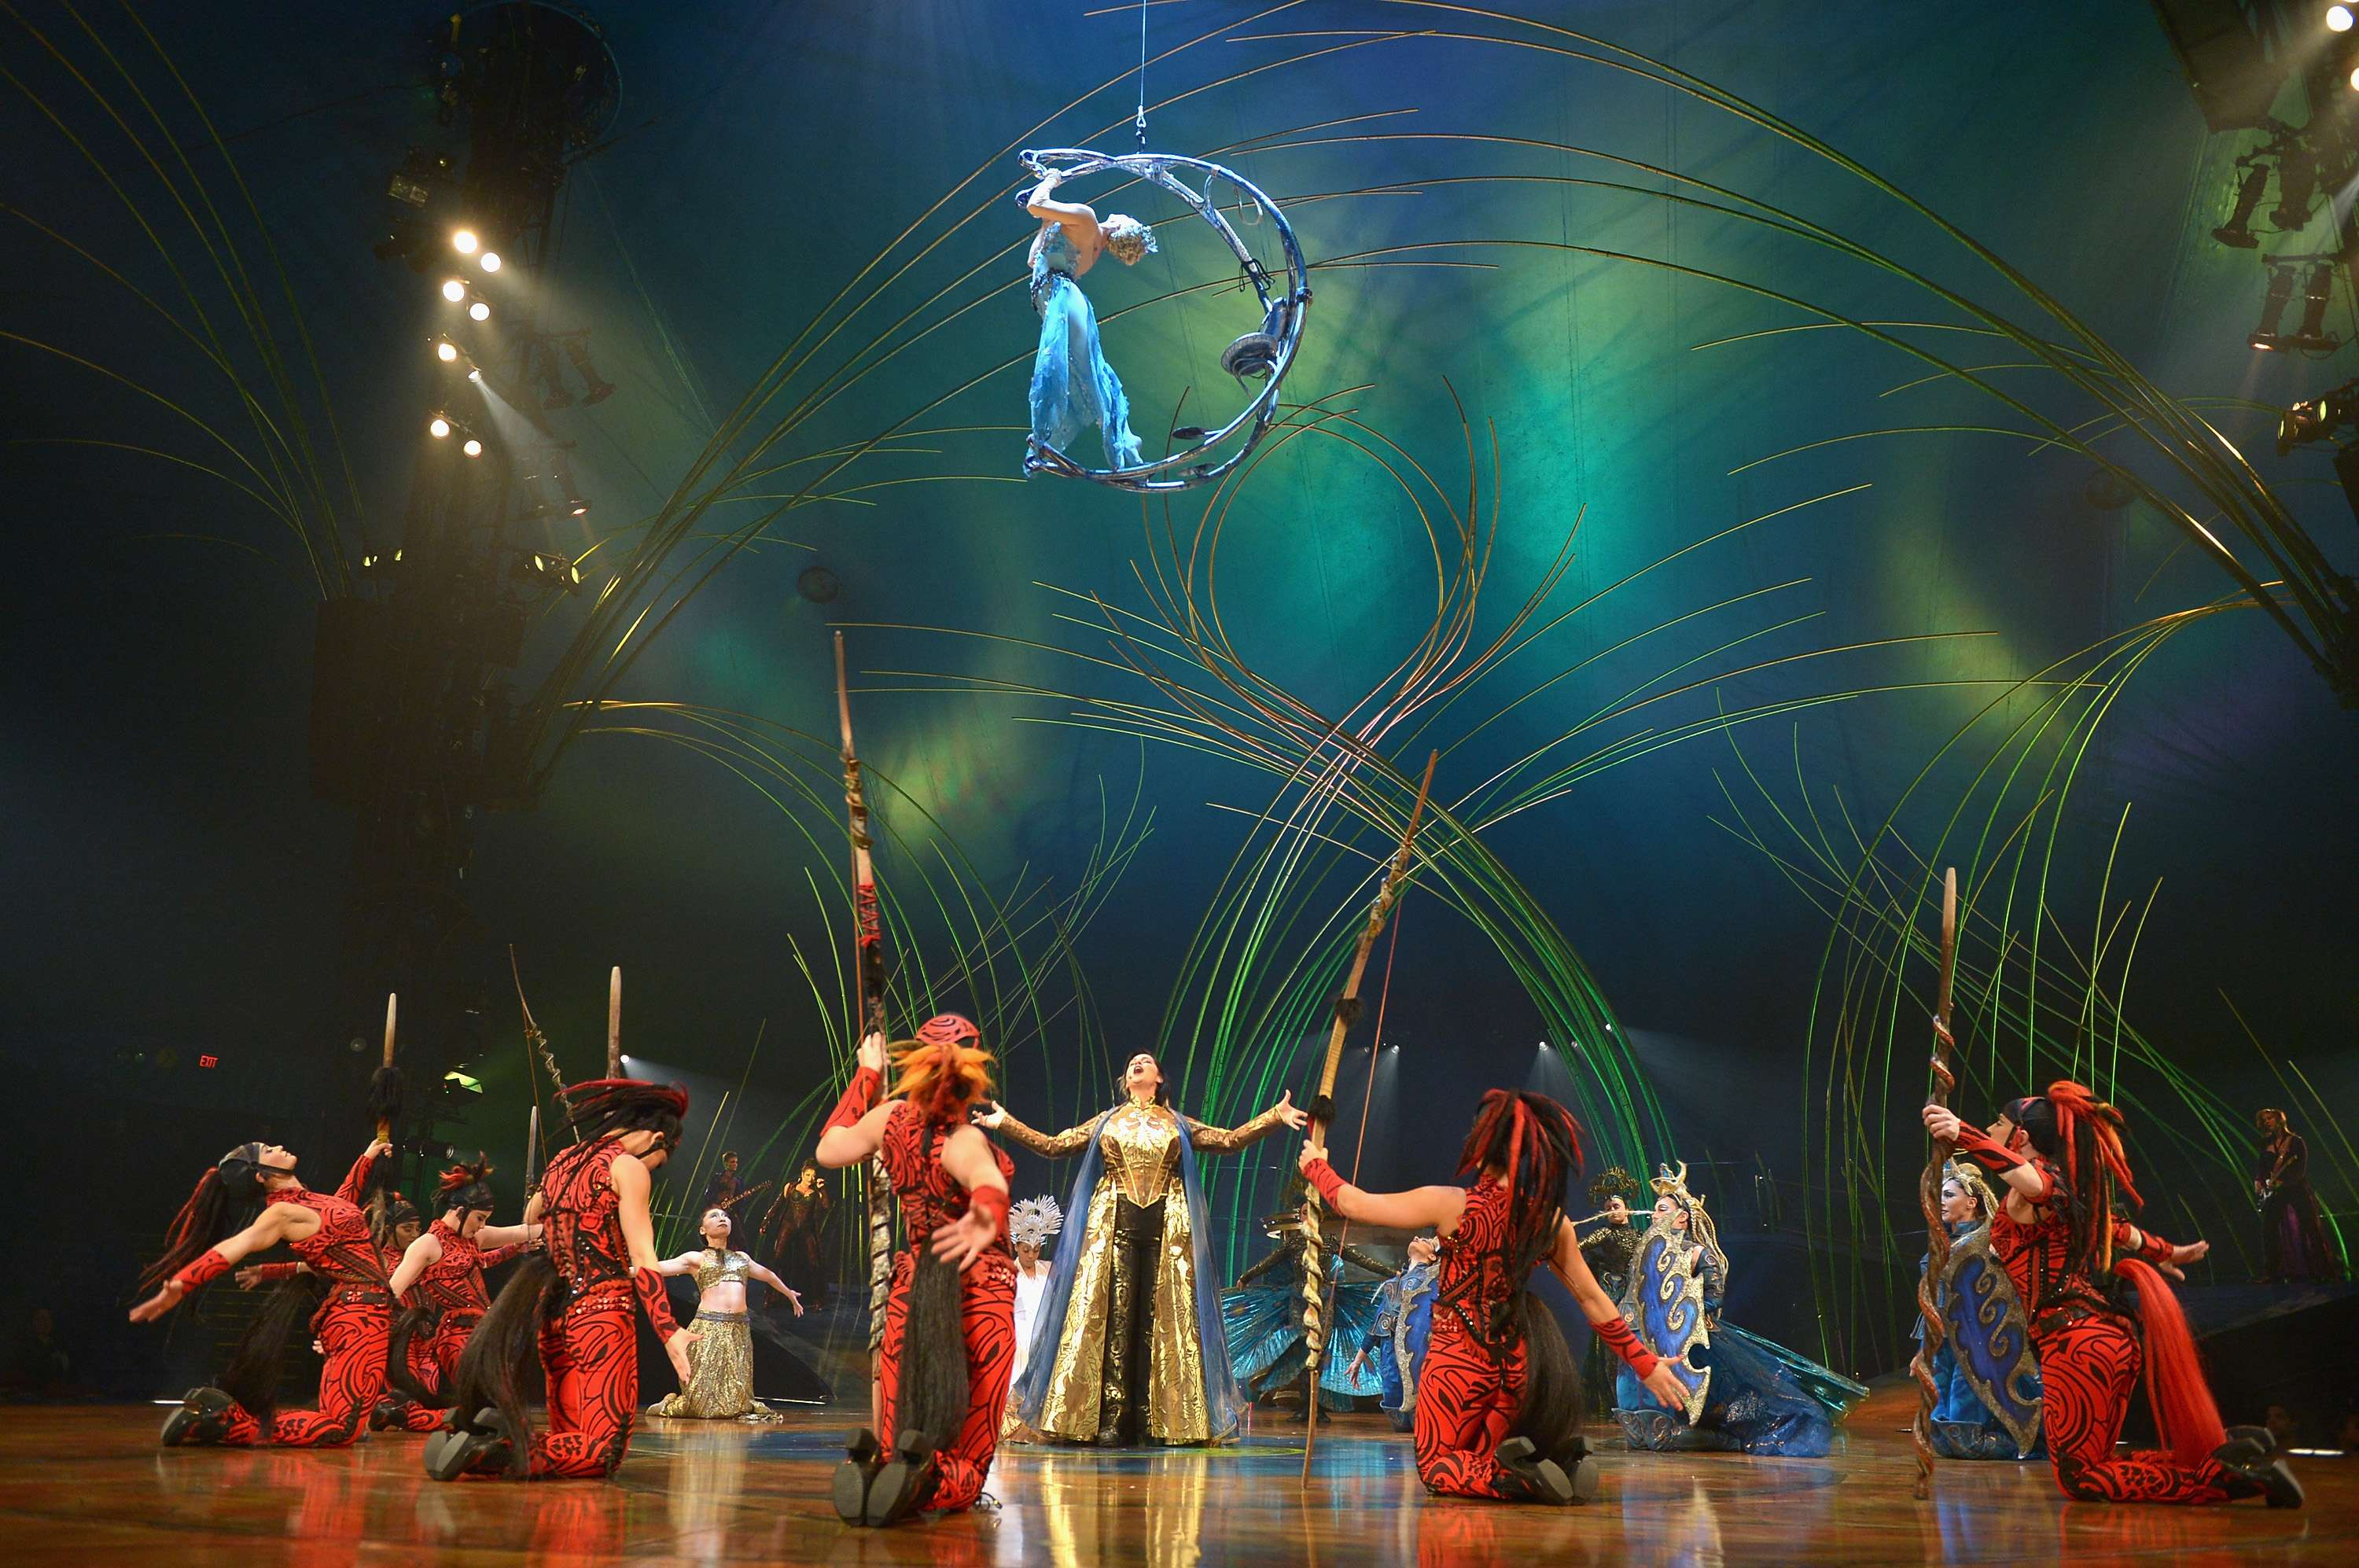 """Amaluna"", Circo del Sol Foto: Getty Images"